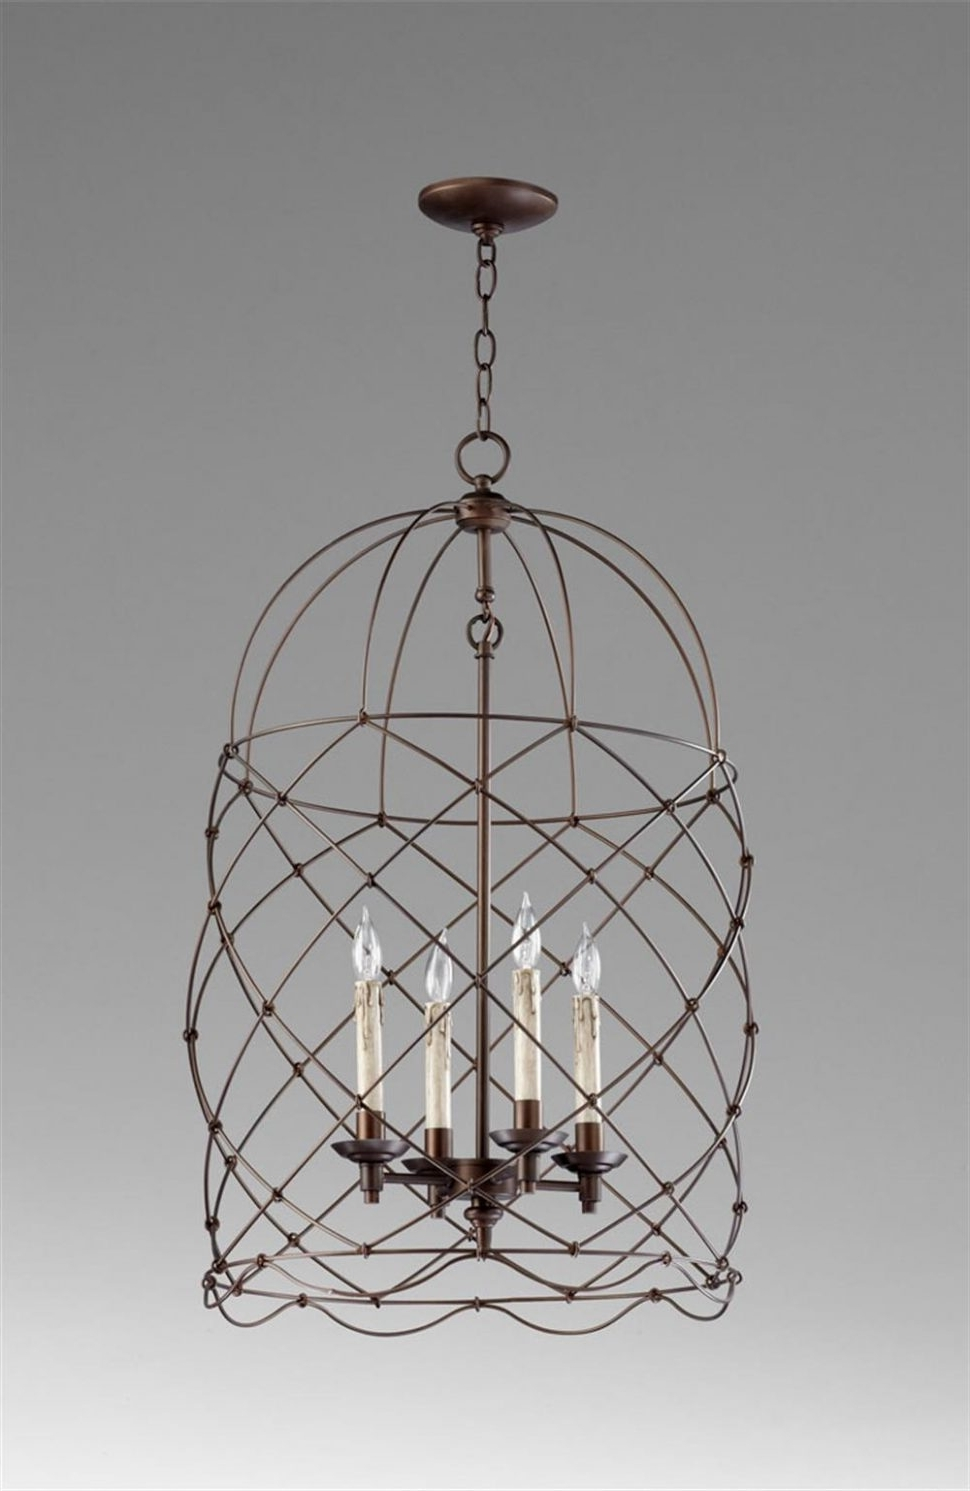 Chandeliers Design : Magnificent Cage Chandelier Lighting Currey Inside 2019 Cage Chandeliers (View 11 of 20)